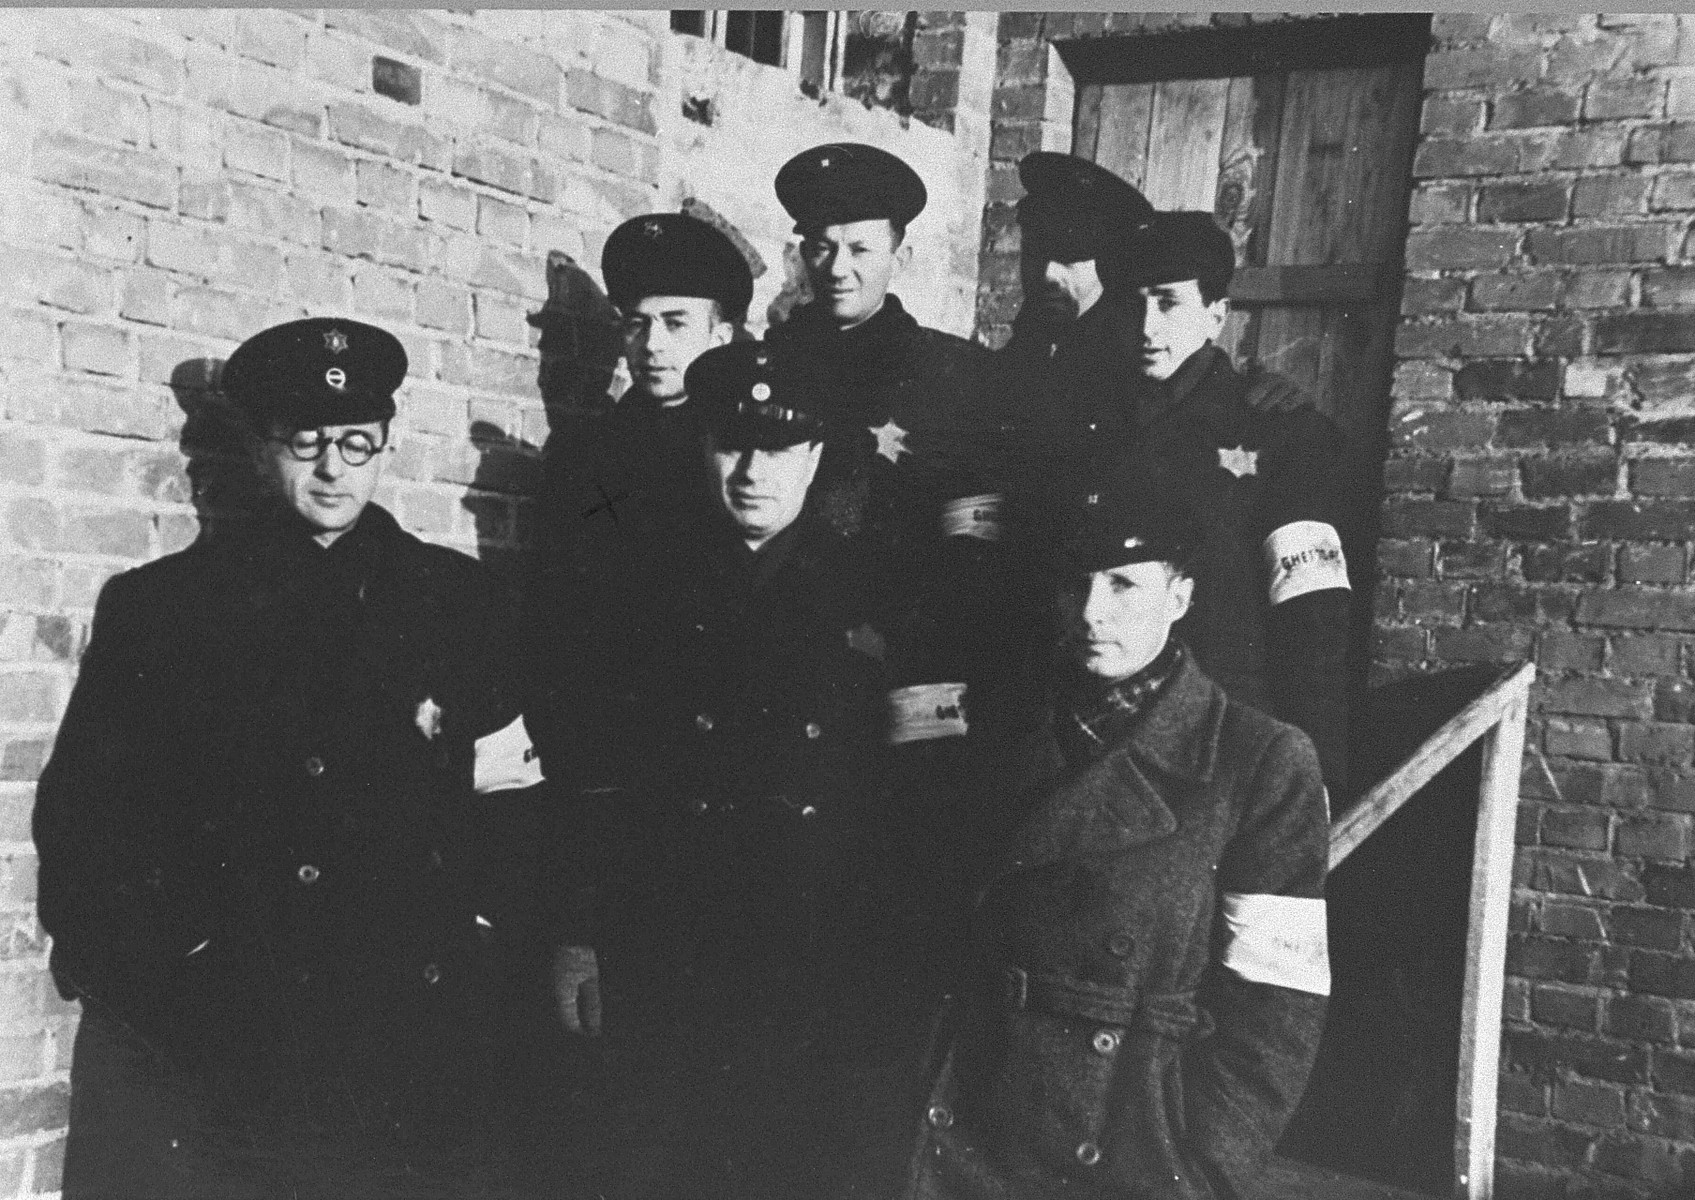 A group of Jewish police poses in front of the ghetto prison.  From left, first row: Kalberski (deputy chief), Melamdowicz (chief), Nikko Lewinstein. Back row, from left: Mordechai Kronowski, Elchanan Rosental, Jaffe, Yehuda Sergey.  There were two prisons in the Kovno ghetto, one for people caught at avoiding forced labor and the other for criminals. This photo was taken in front of the criminal prison. These policemen served as prison guards.